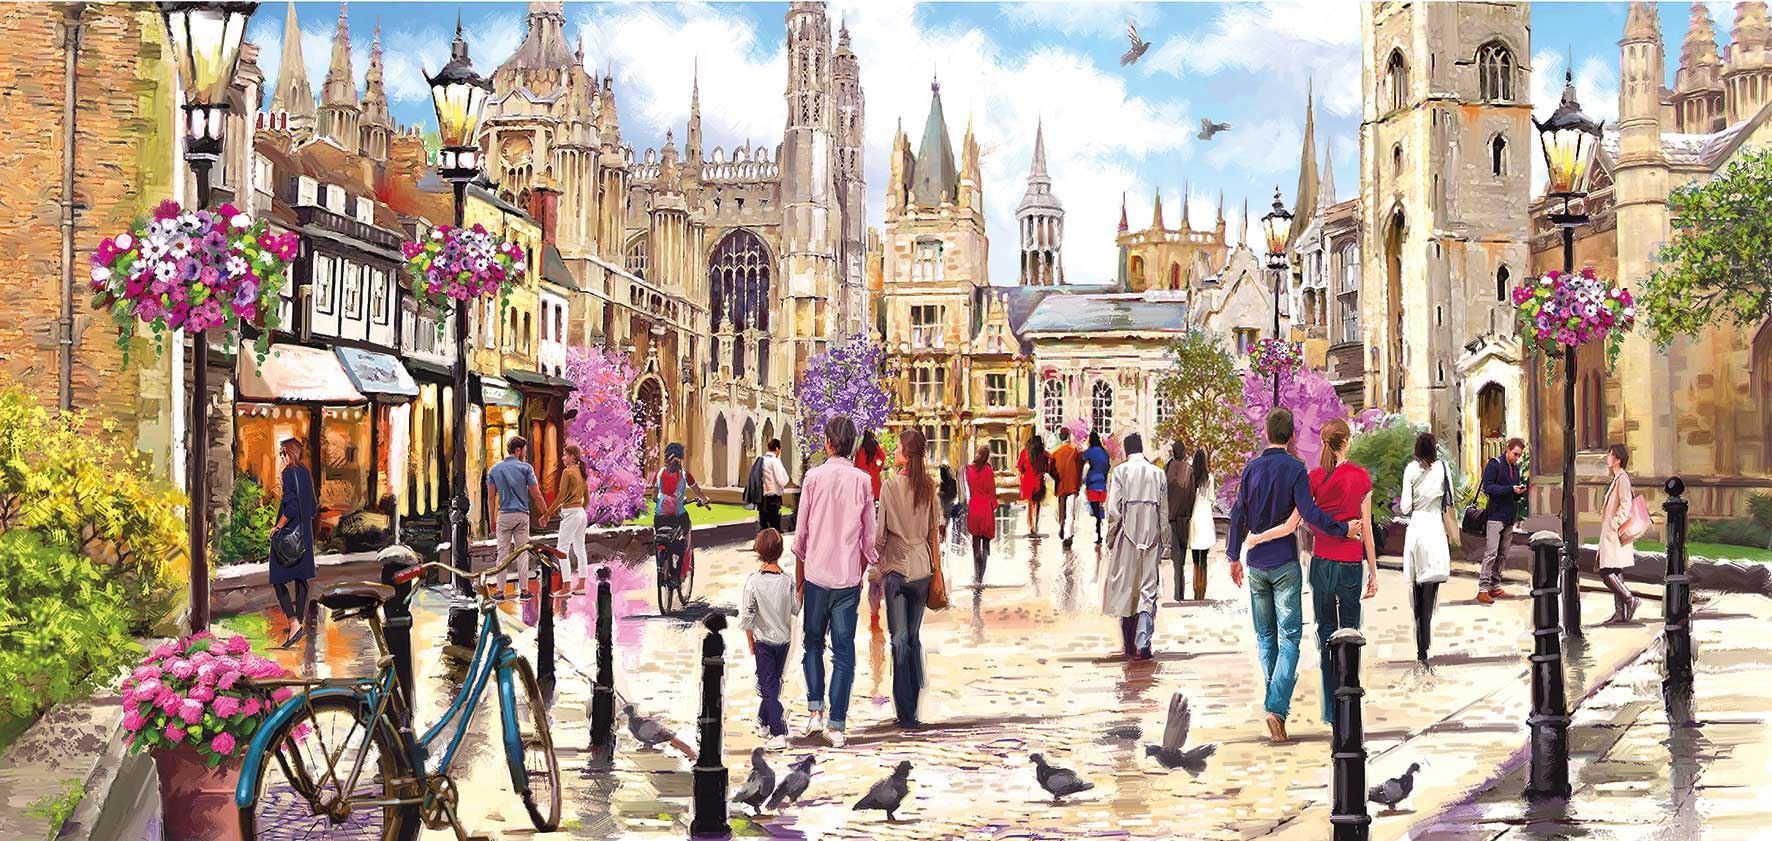 Gibsons Cambridge Jigsaw Puzzle (636 Pieces)